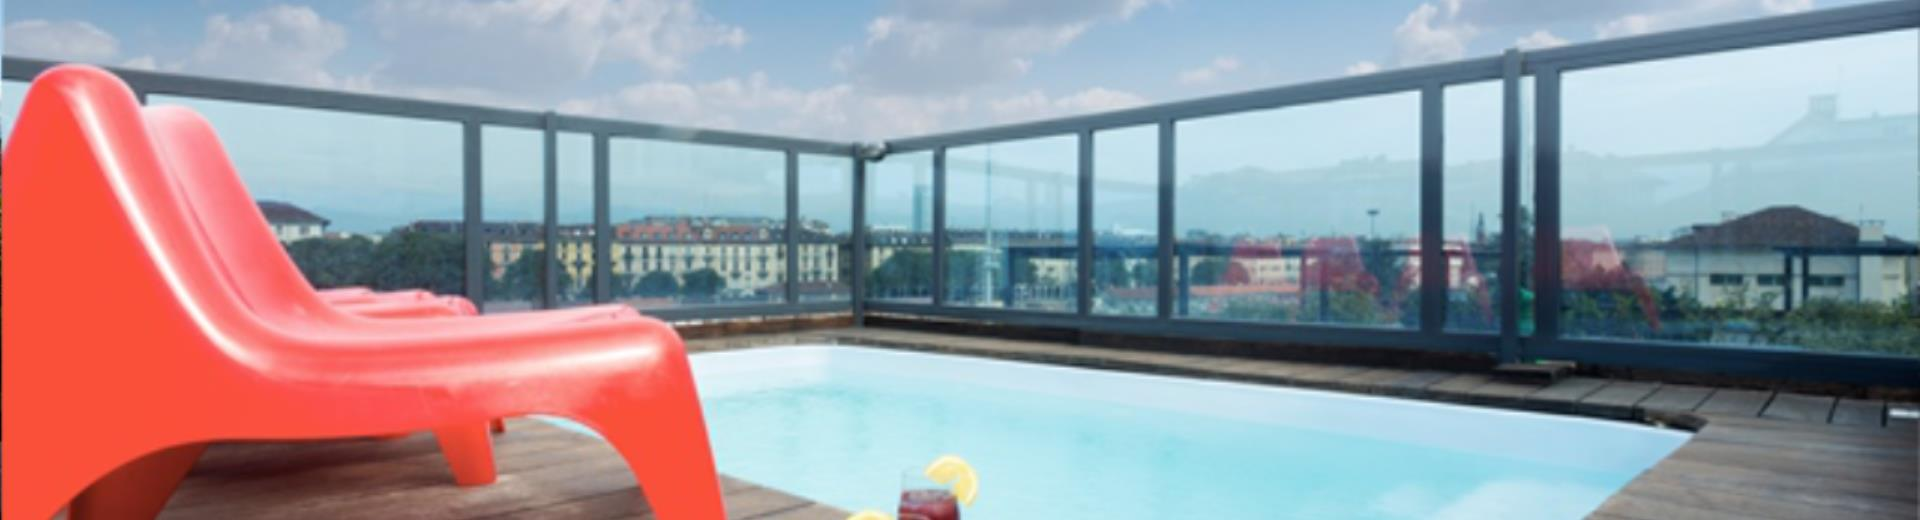 Best Western Plus Executive Suites, 4 star hotel located in the Centre of Turin, offers its guests an oasis of relaxation really special: on the top floor of the building there is The Executive Rooftop where you can enjoy the beautiful view of the city immersed in the outdoor pool.